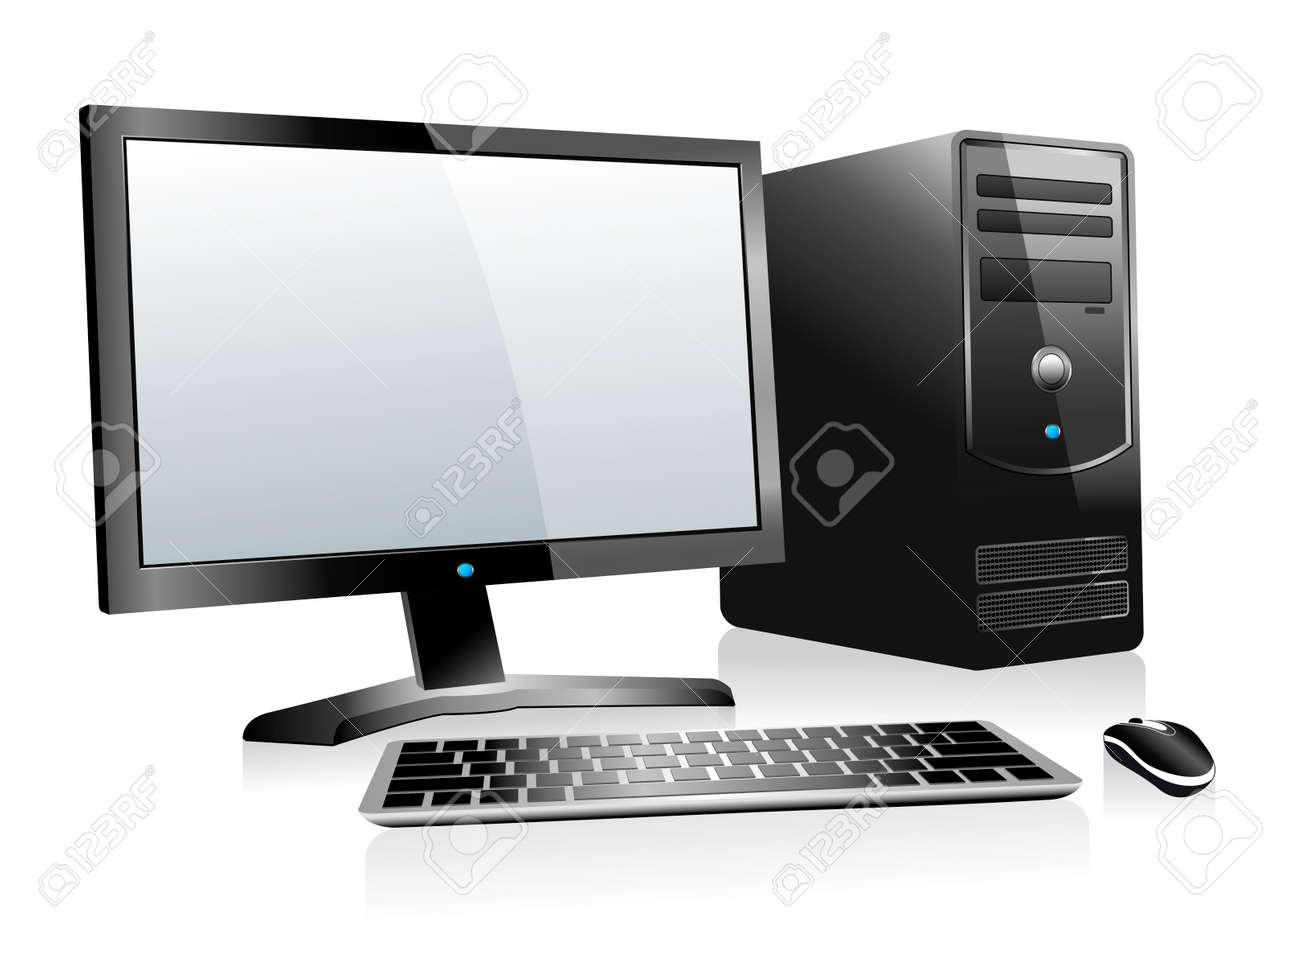 3D Computer with Monitor Keyboard and Mouse - 27163726